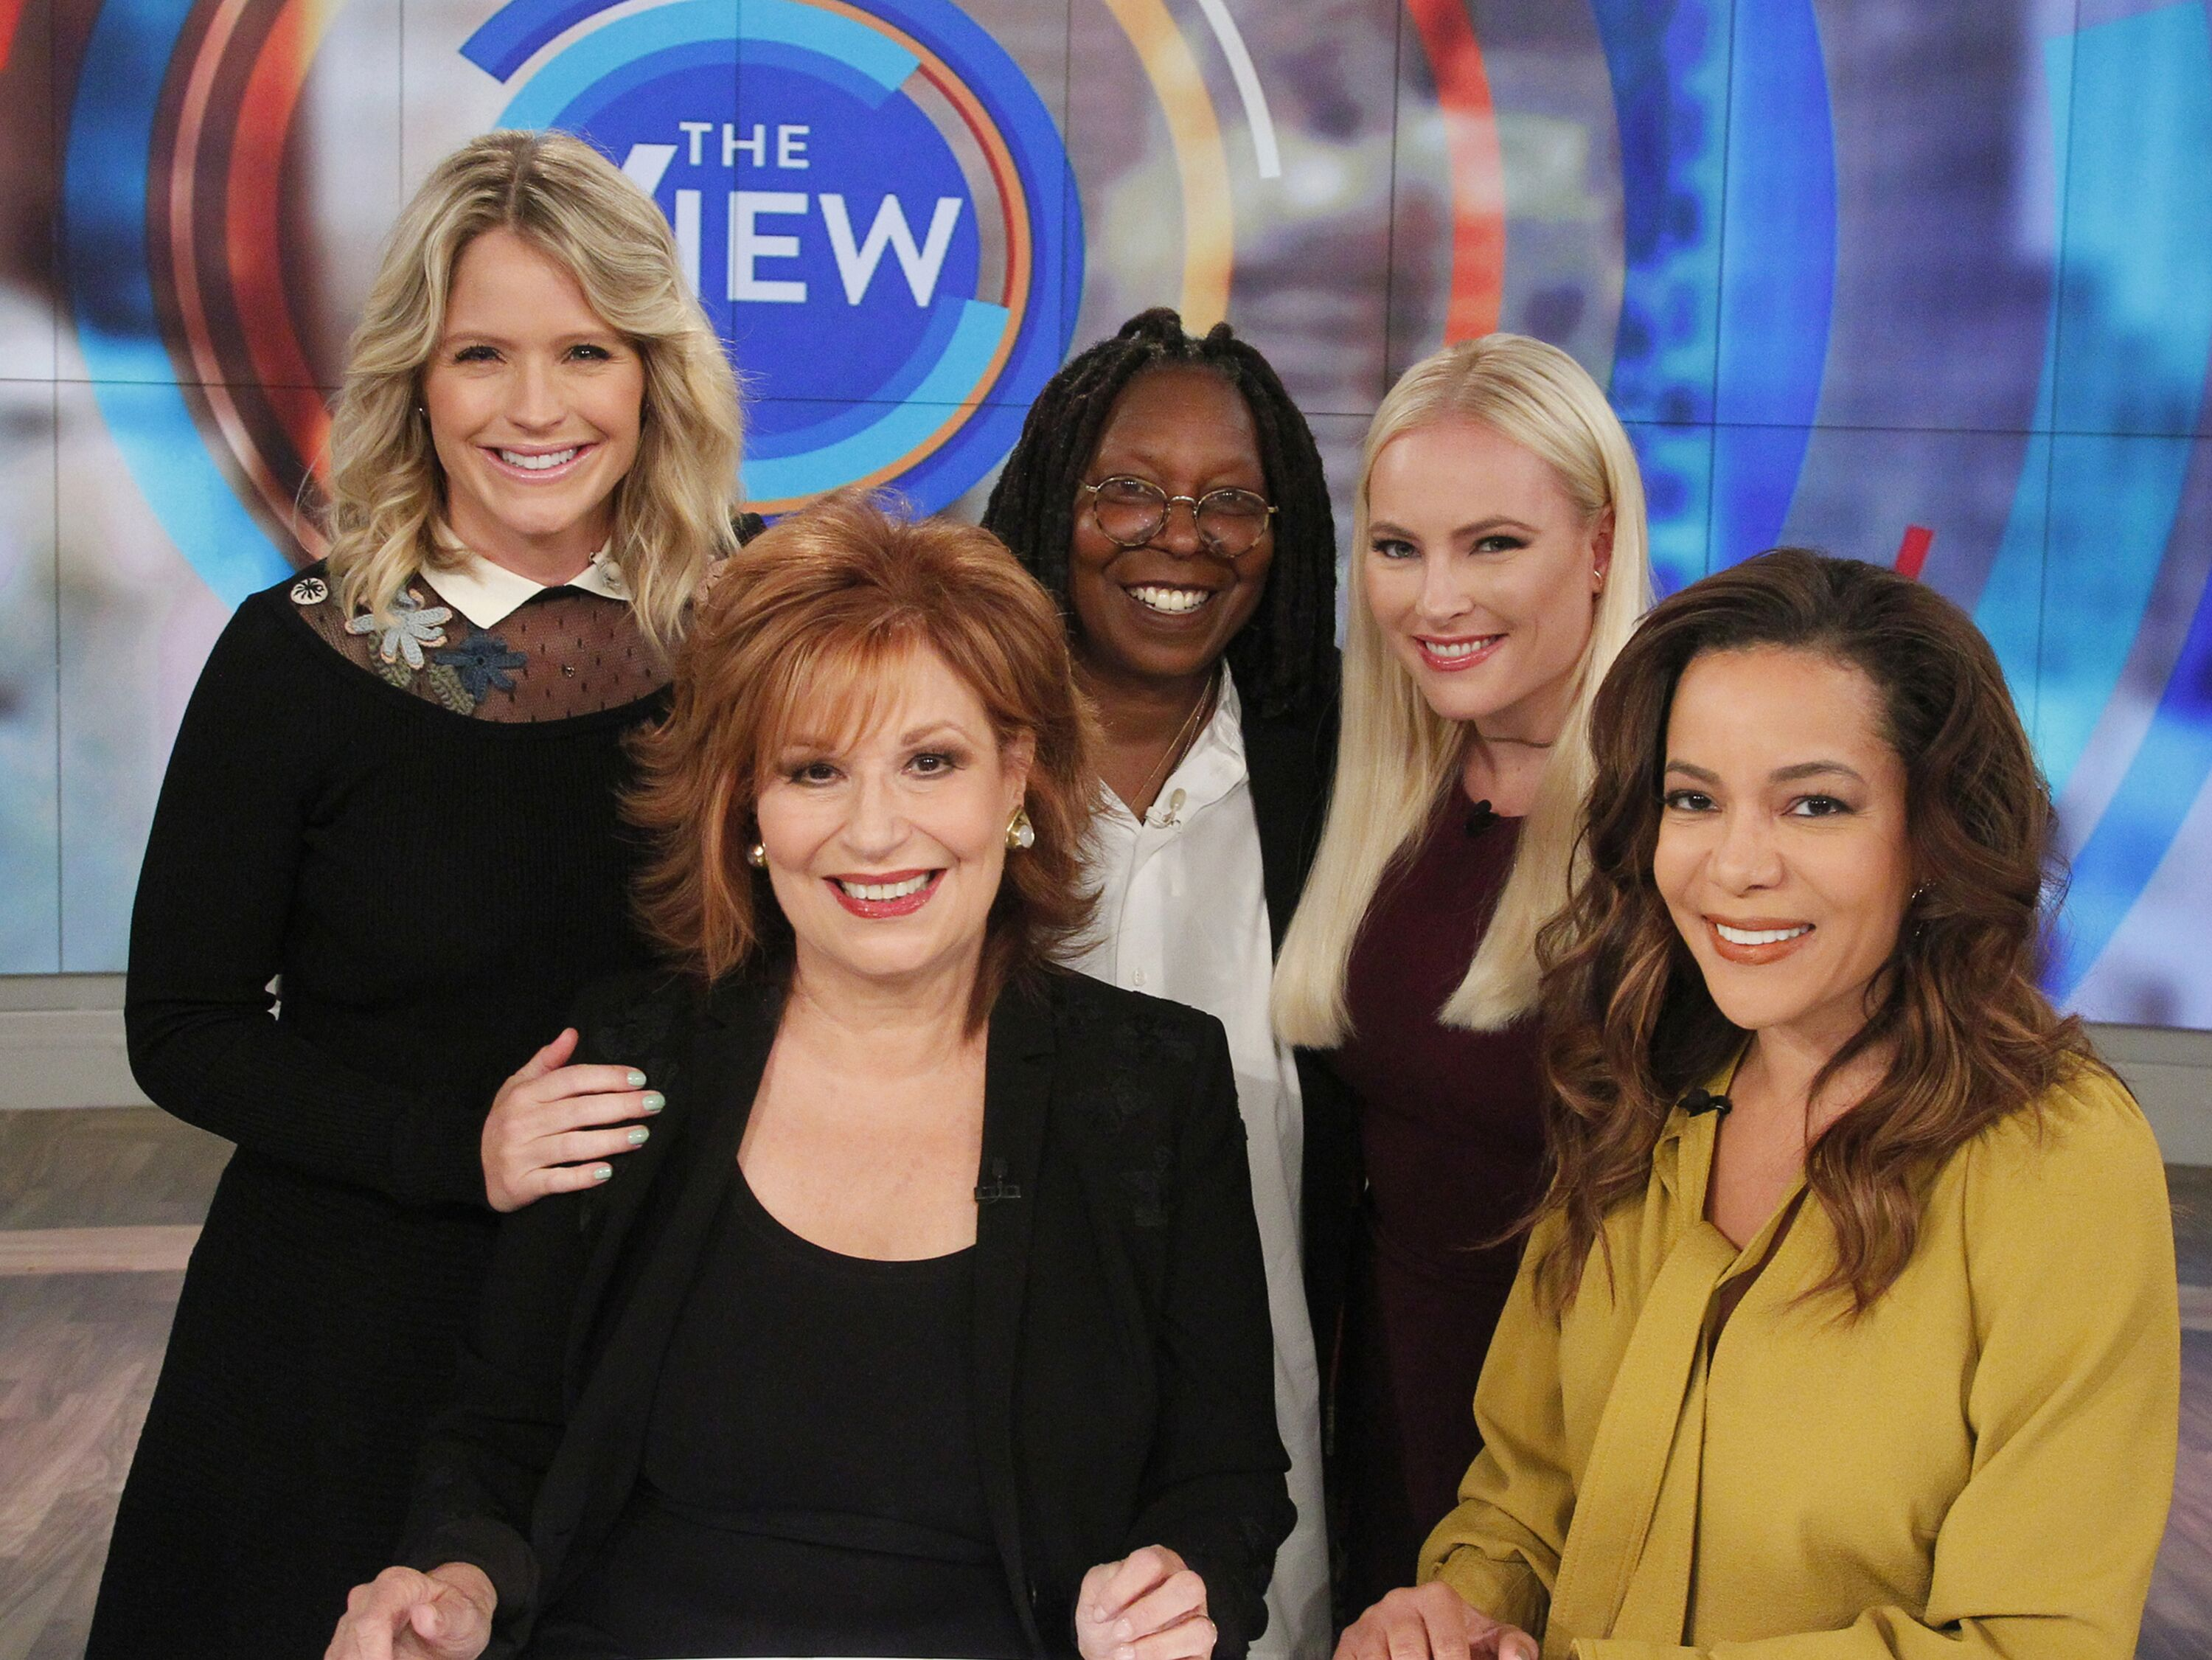 """Sara Haines, Whoopi Goldberg, Meghan McCain, Sunny Hostin, and Joy Behar on """"The View,"""" on October 09, 2017 